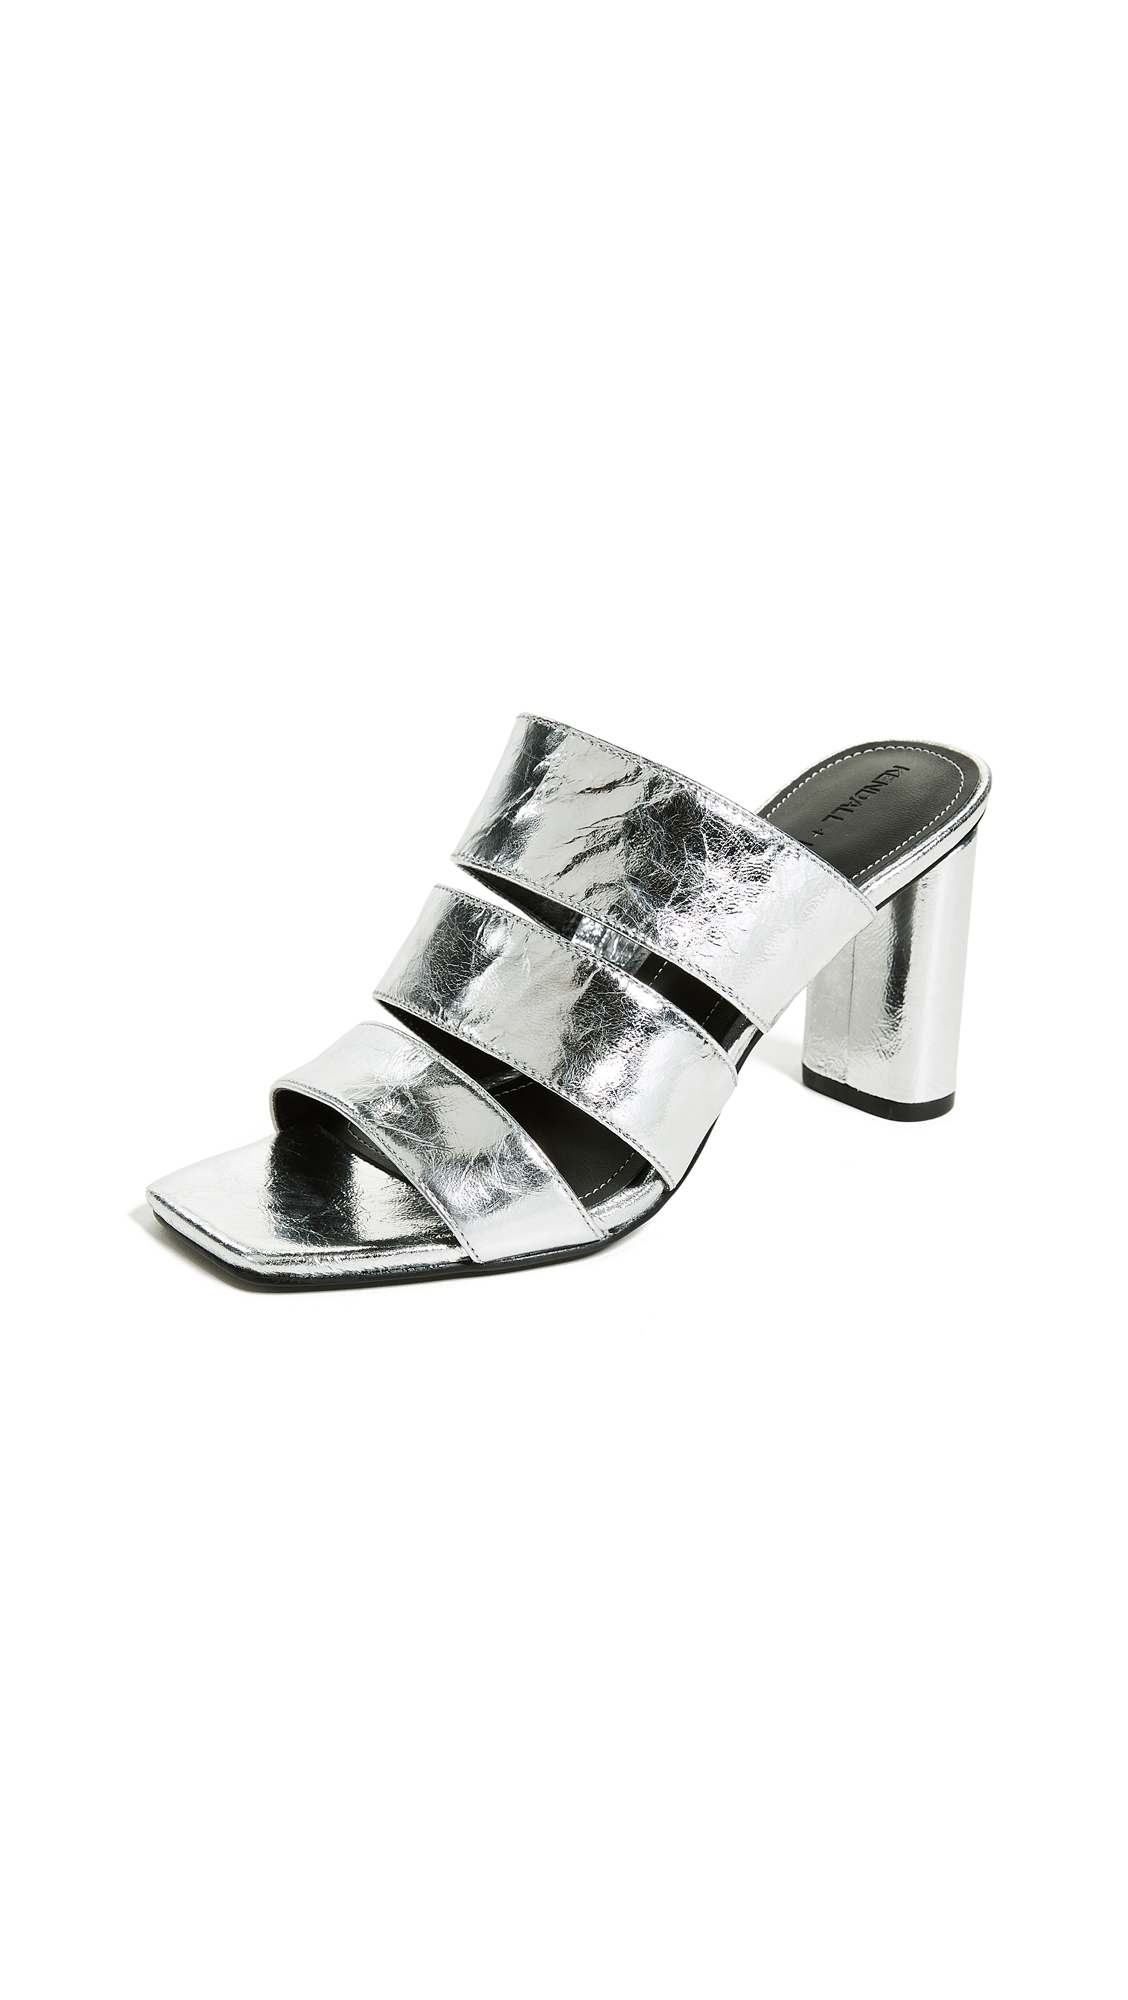 KENDALL + KYLIE Leila Sandals - Silver